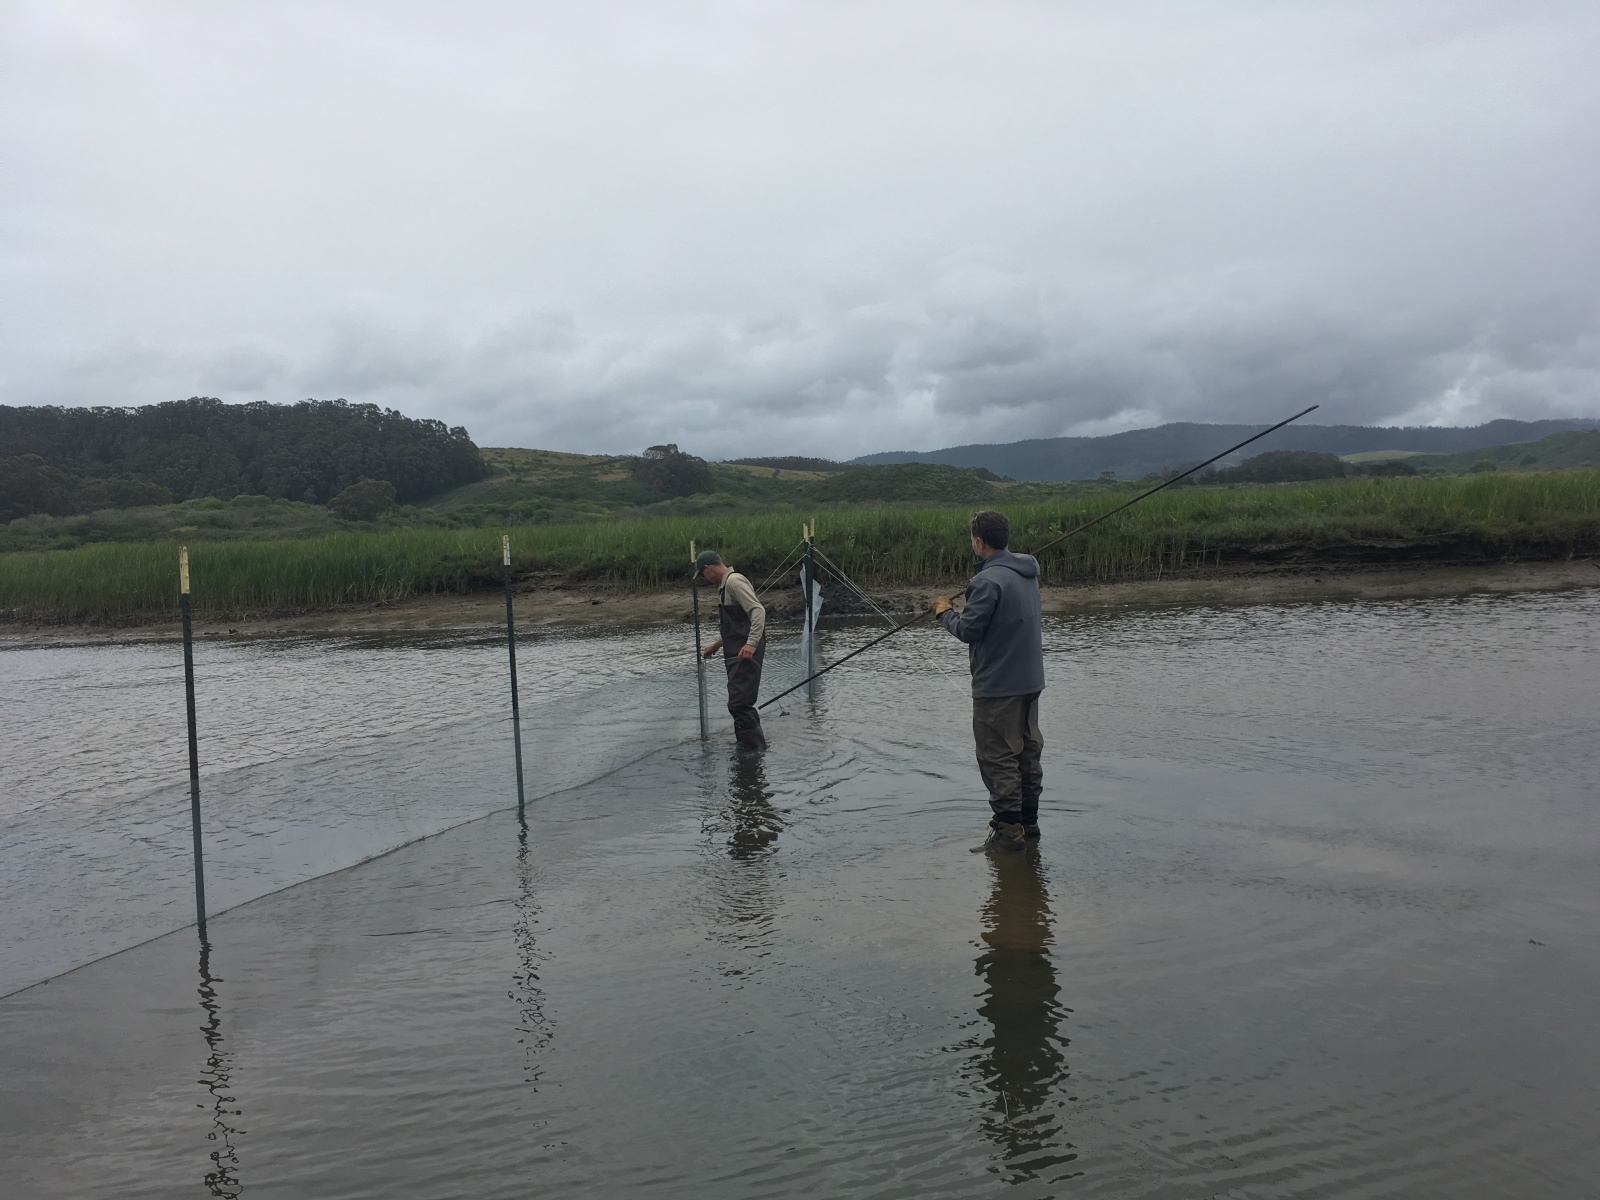 Setting up exclusion fencing to keep fish out of the work area. May 2019